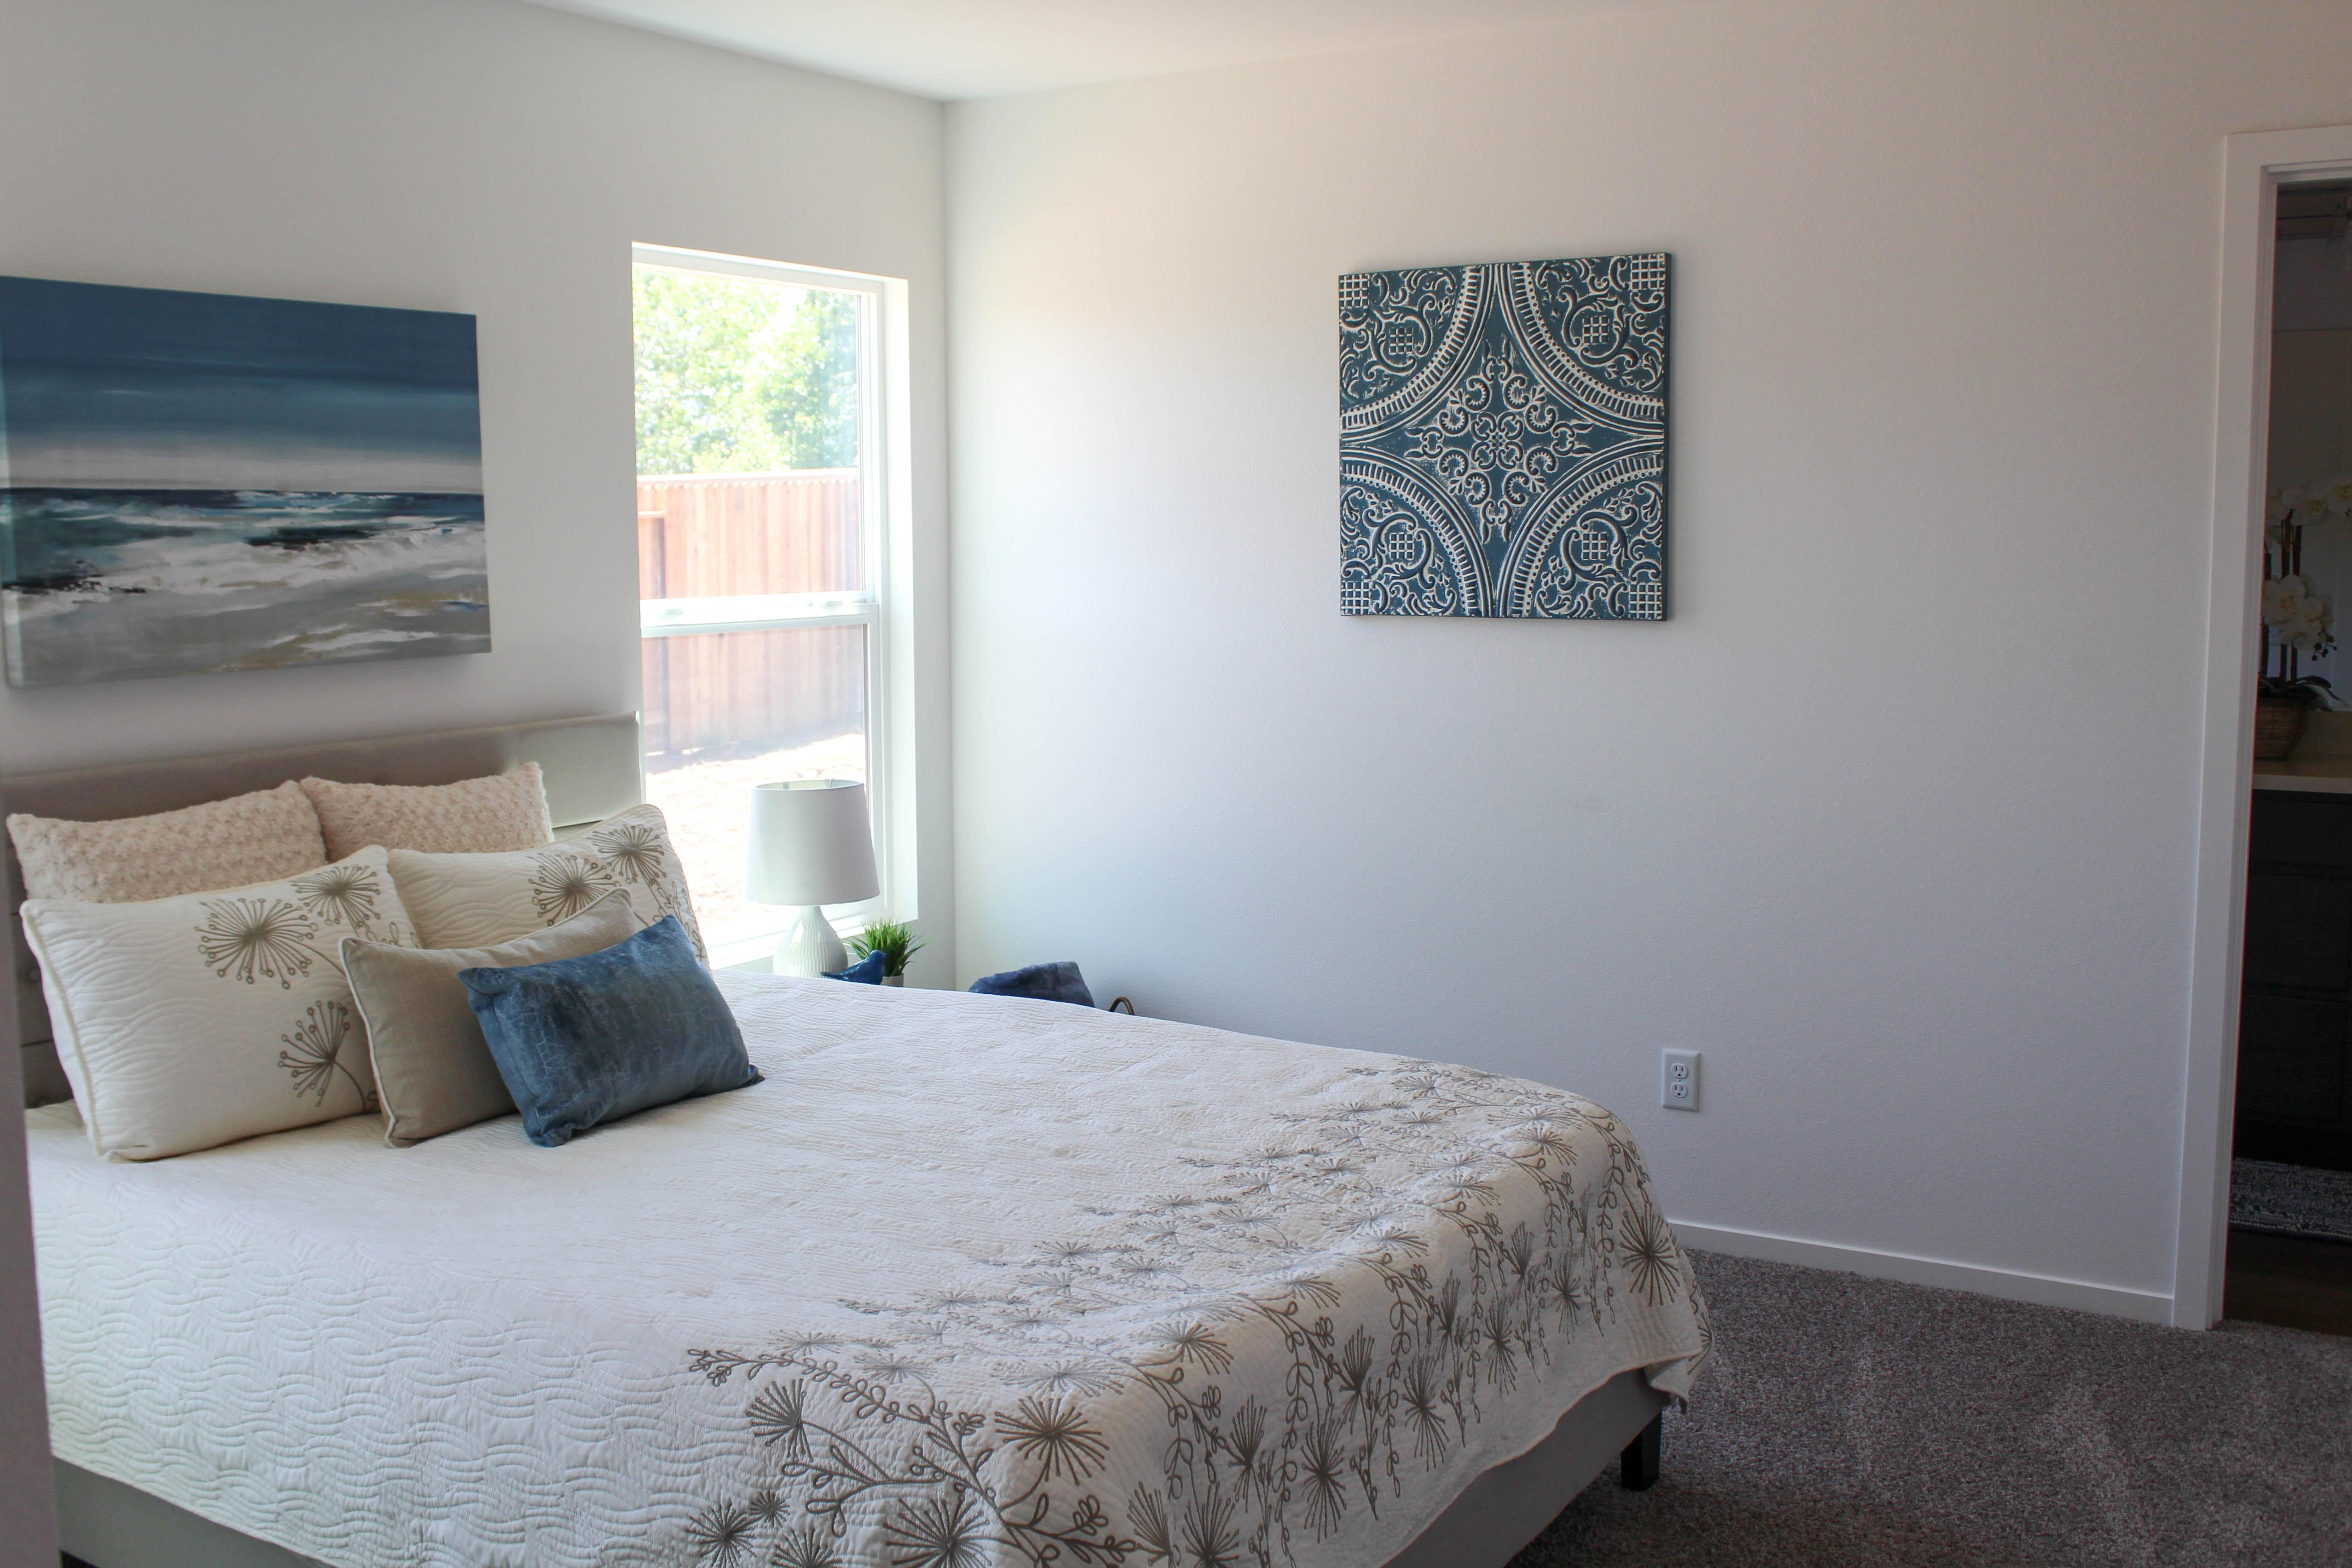 Bedroom featured in the 2B By Crowne Communities in Chico, CA